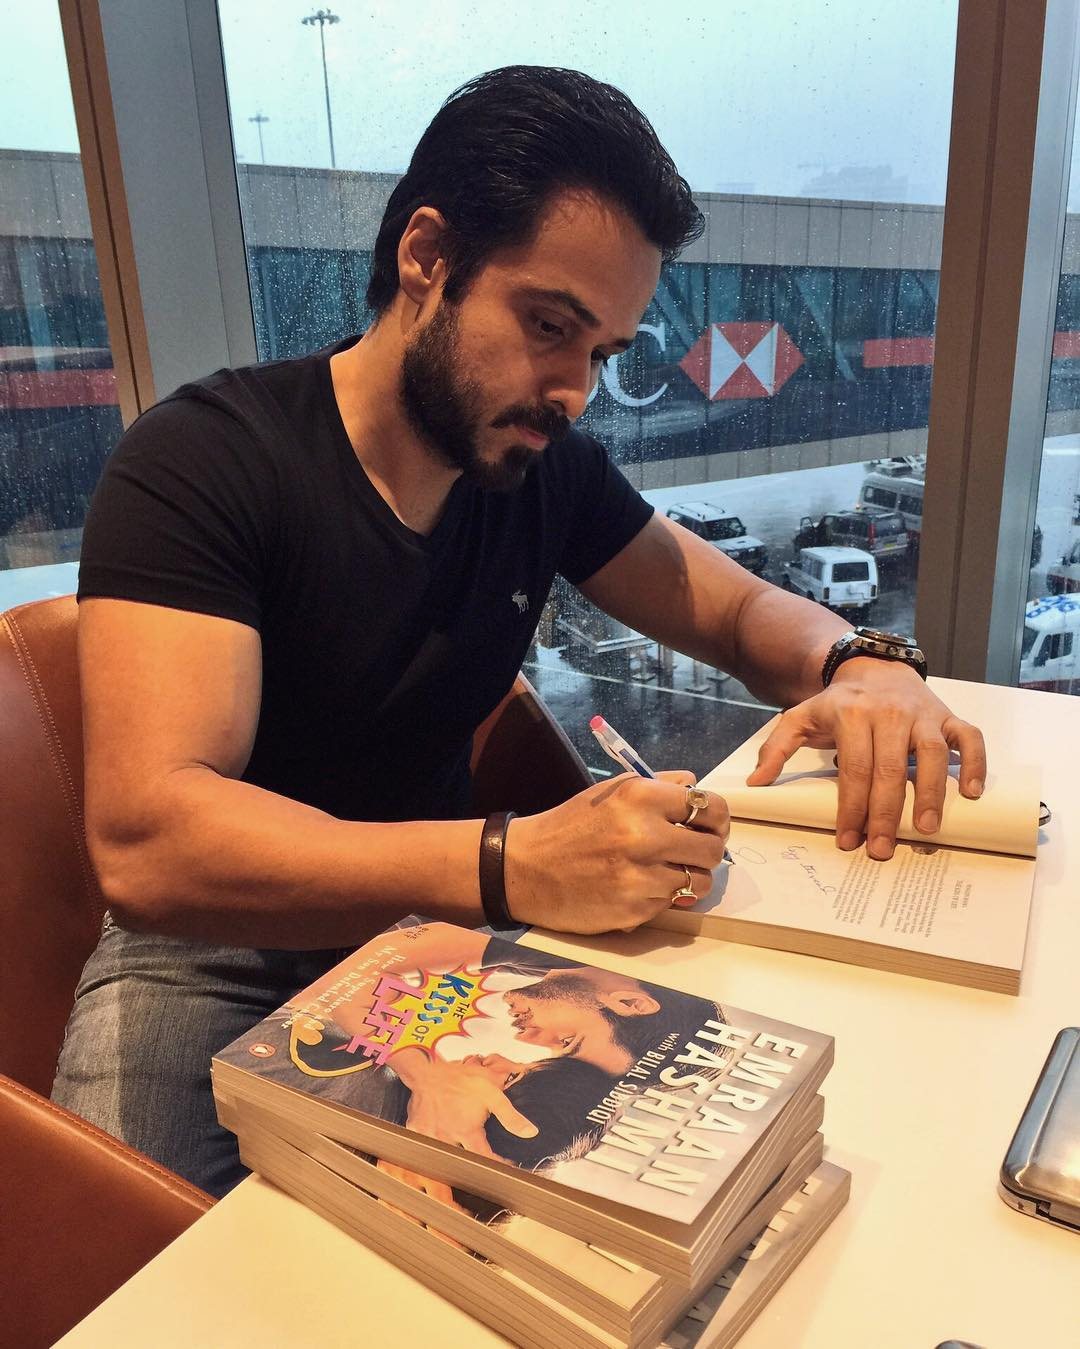 First Salaries Of These B-Town Stars Will Surprise You - emraan hashmi